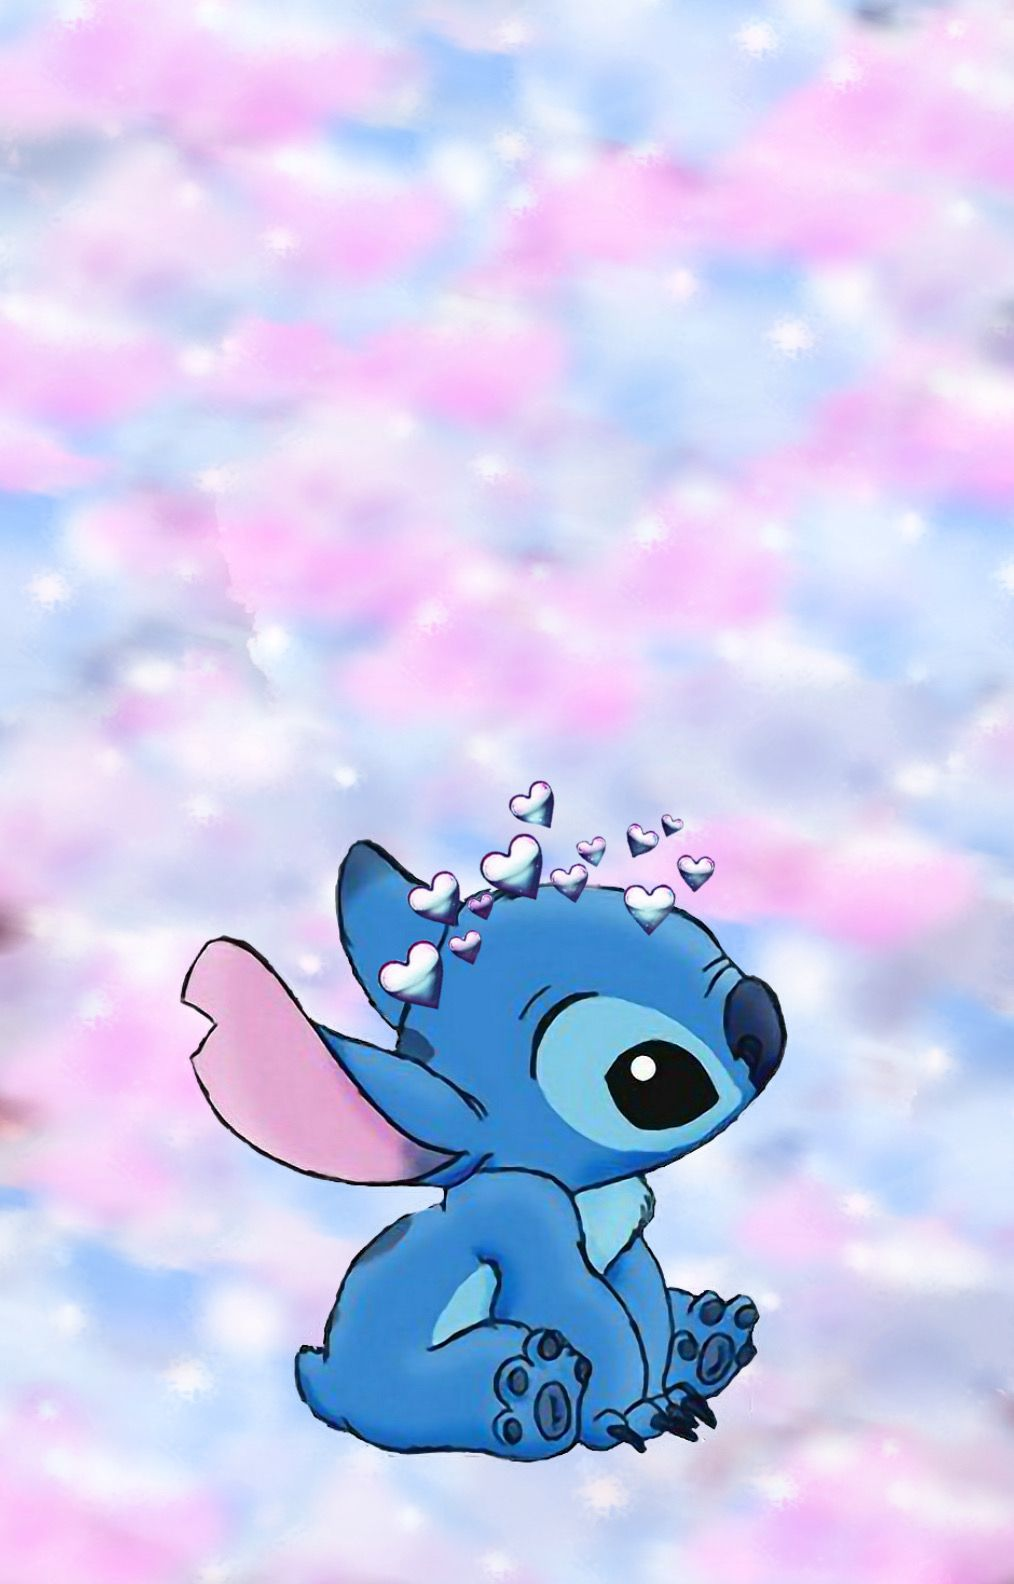 Stitch wallpaper in 2020 Cartoon wallpaper iphone Cute tumblr 1014x1584